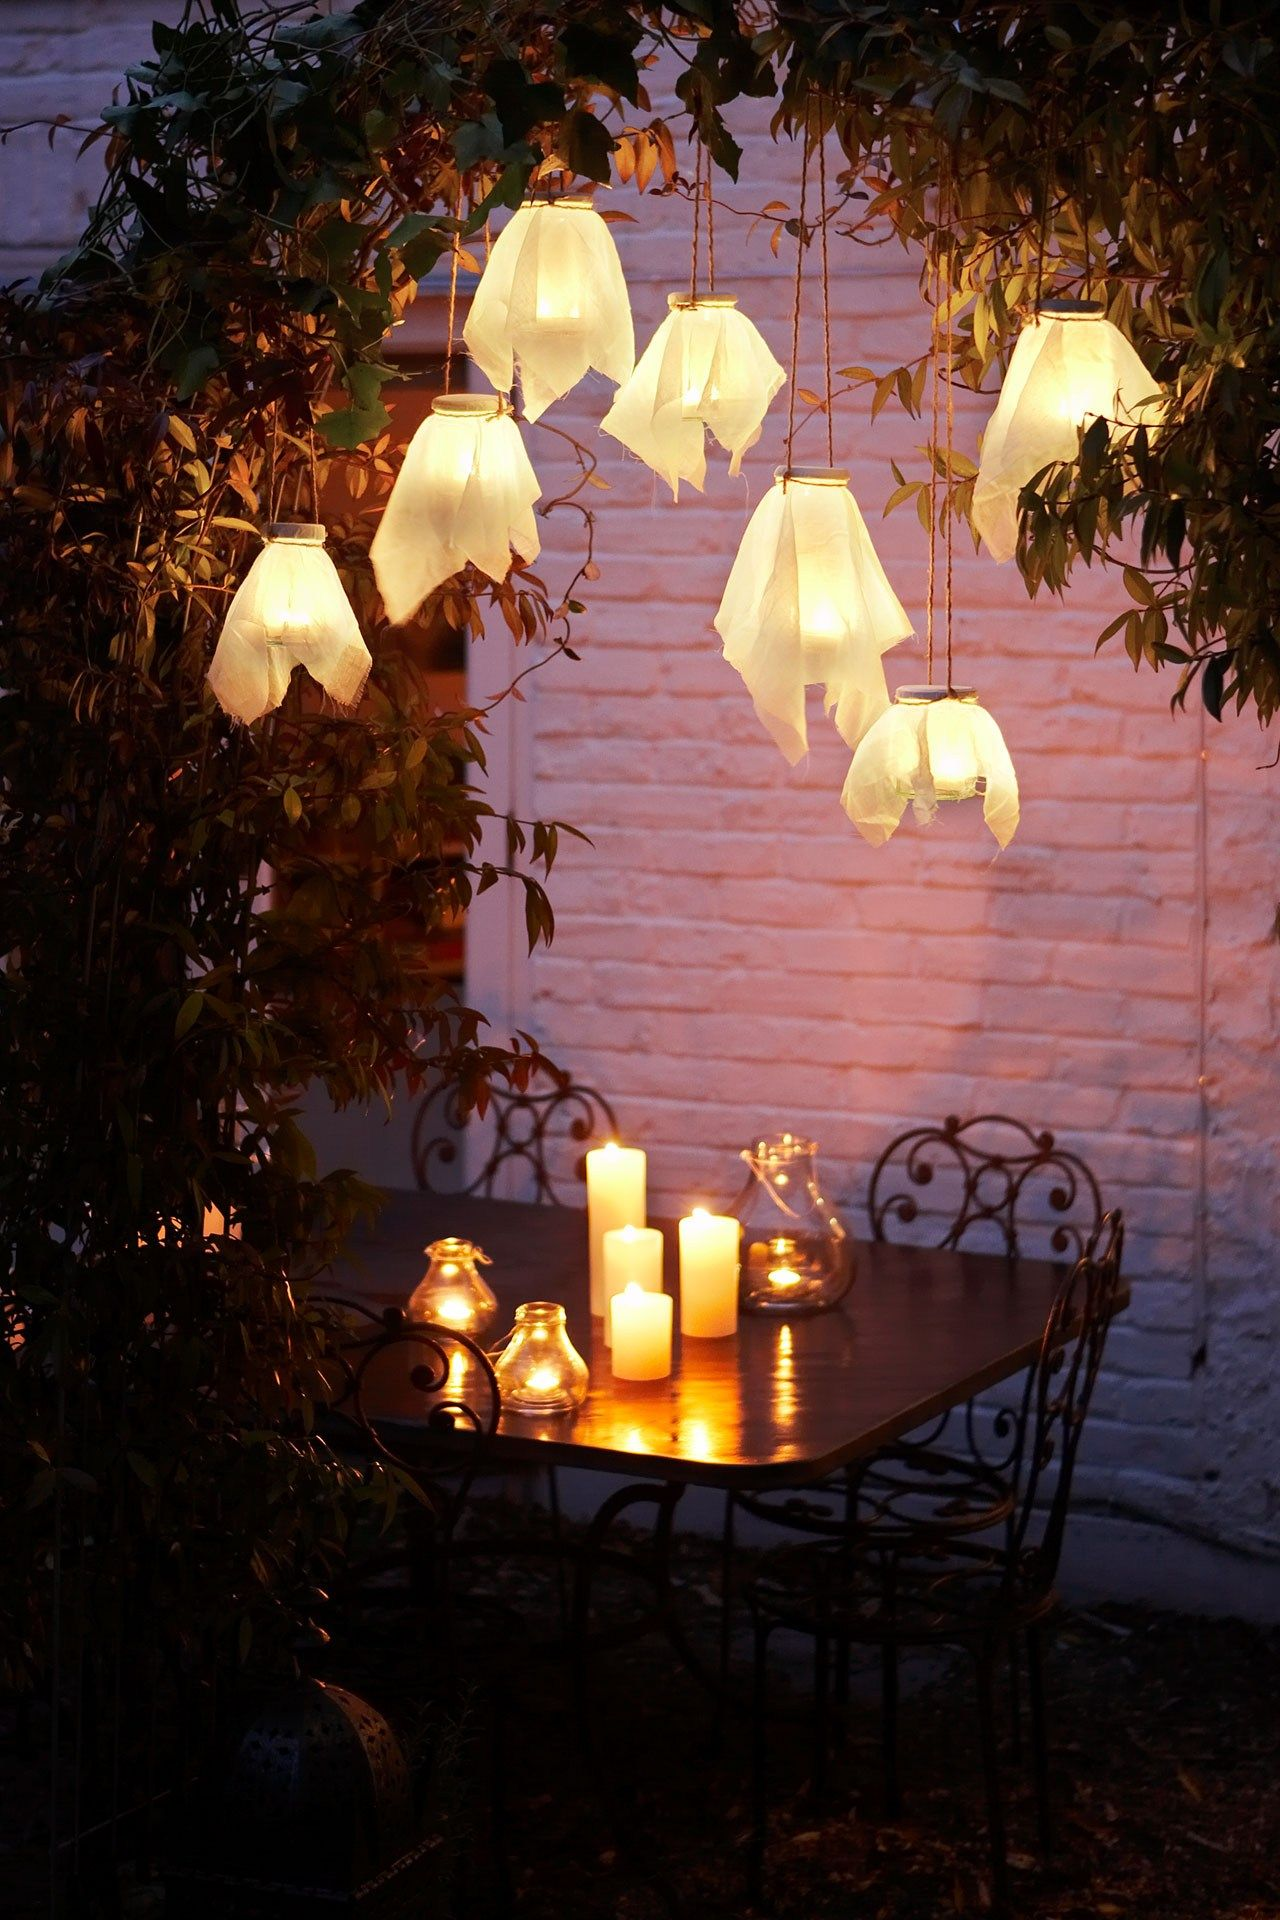 diy party lighting. From Lighting To Decoration, Wonderful Ideas For Taking The Party Outside...whatever Diy N